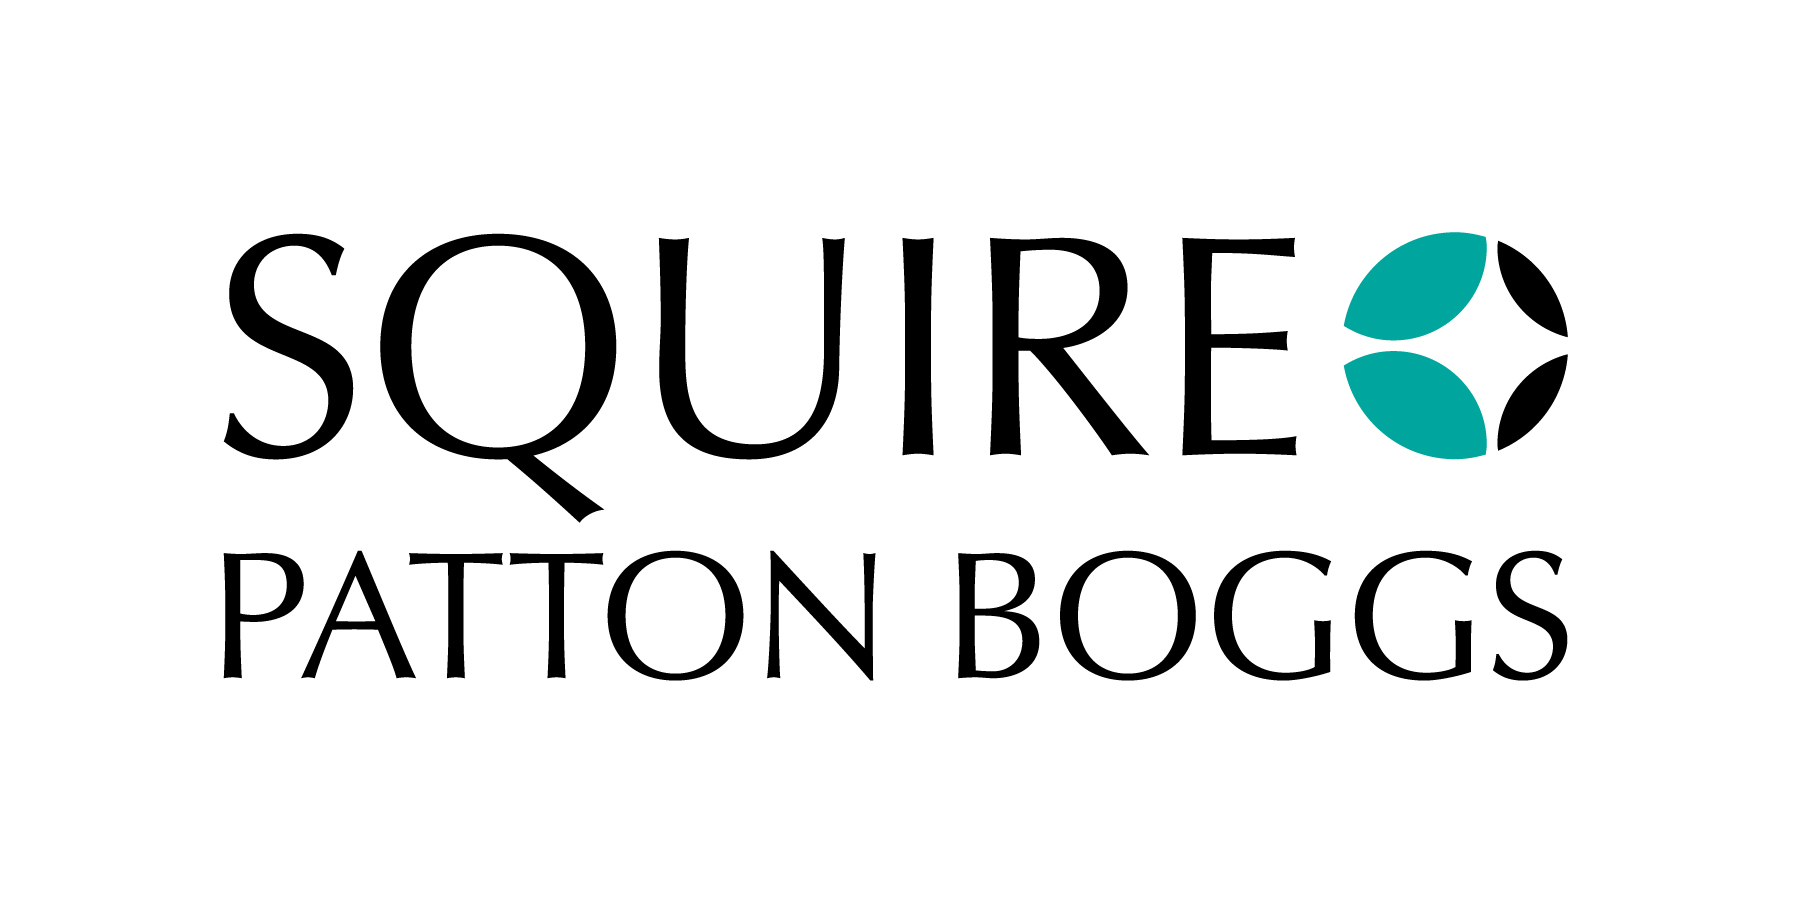 https://wordpressstorageaccount.blob.core.windows.net/wp-media/wp-content/uploads/sites/976/2019/08/Squire-Patton-Boggs-Logo.jpg